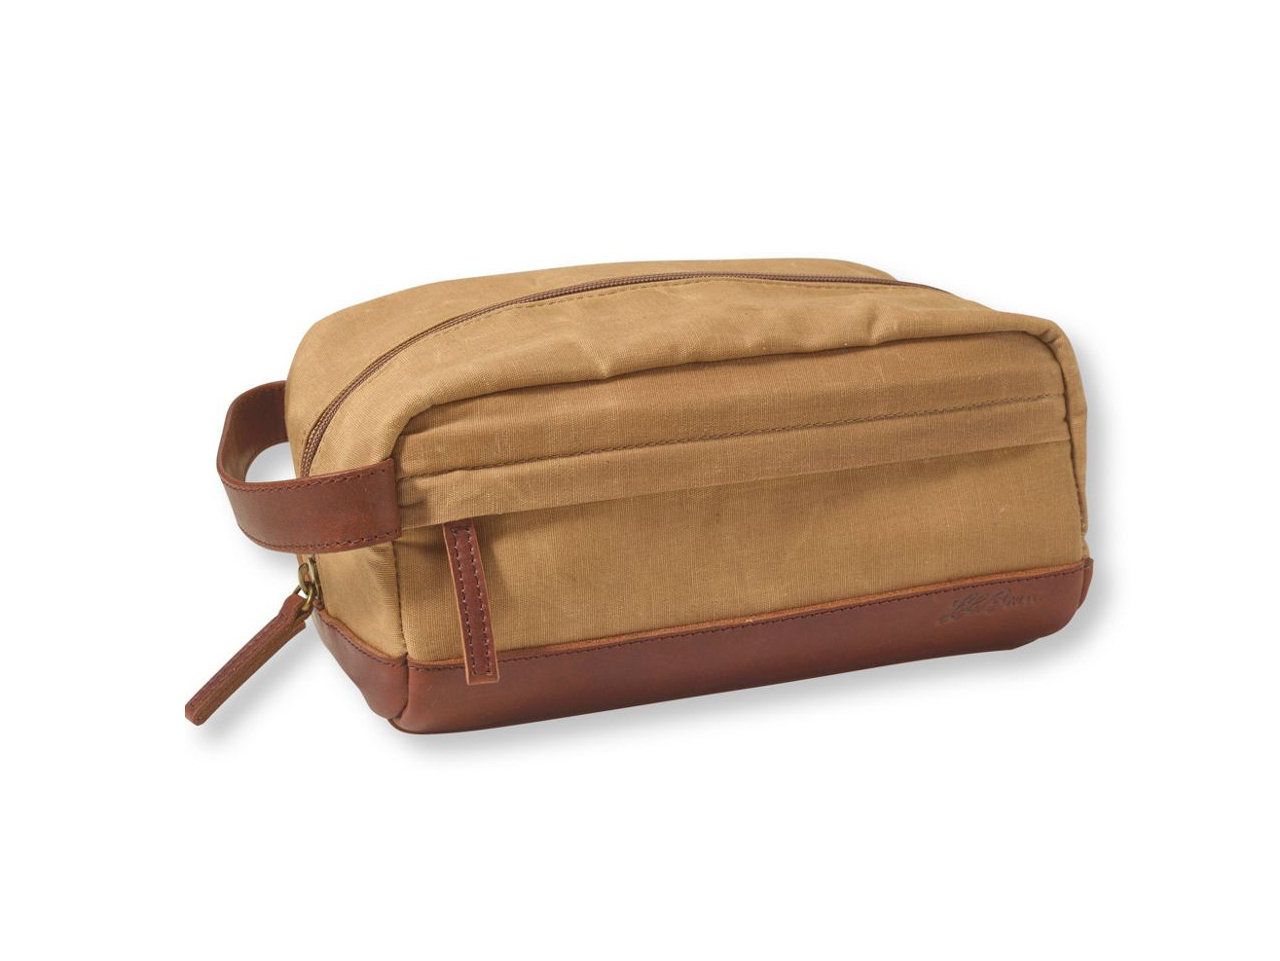 dc2aeacd4b79 The 11 Best Dopp Kits for Men